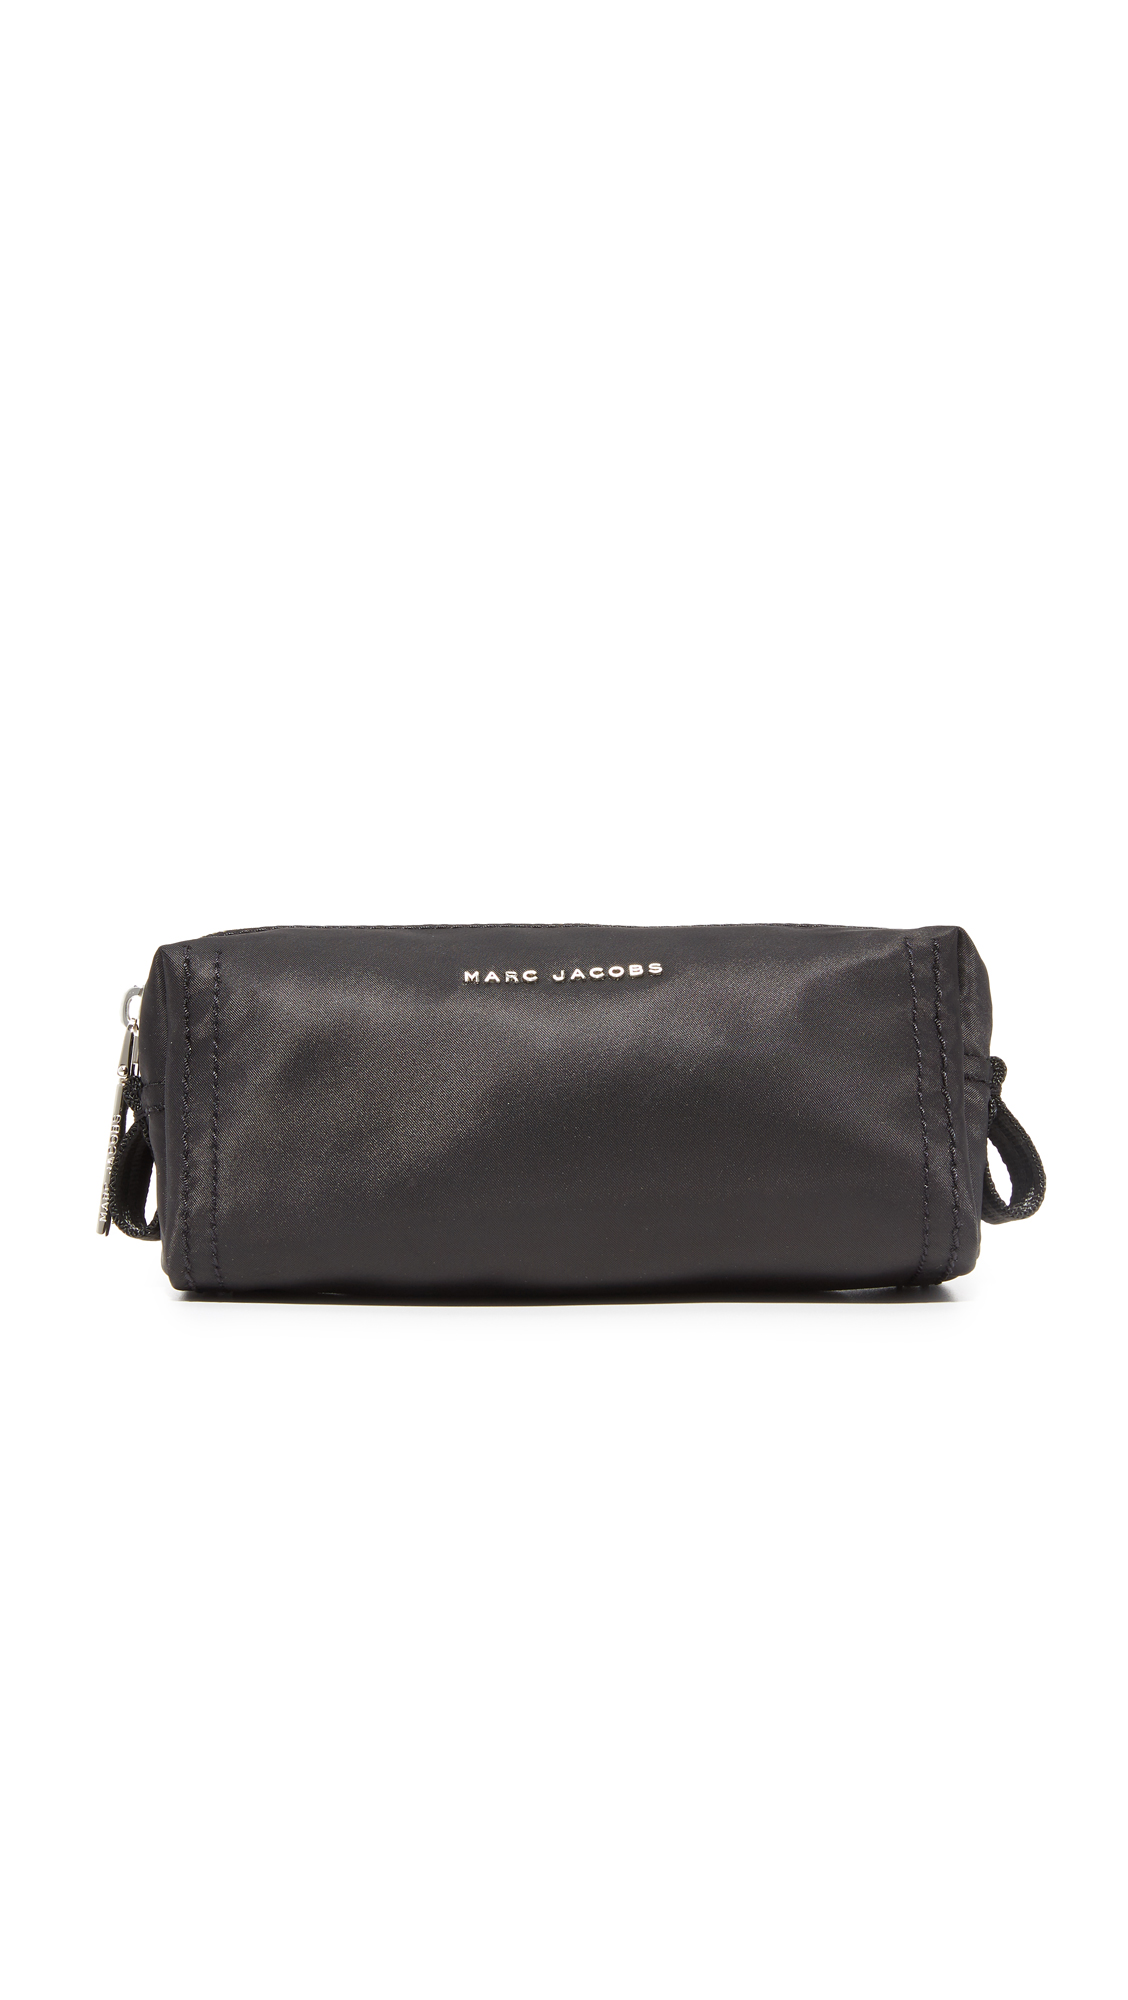 marc jacobs female marc jacobs easy skinny cosmetic case black